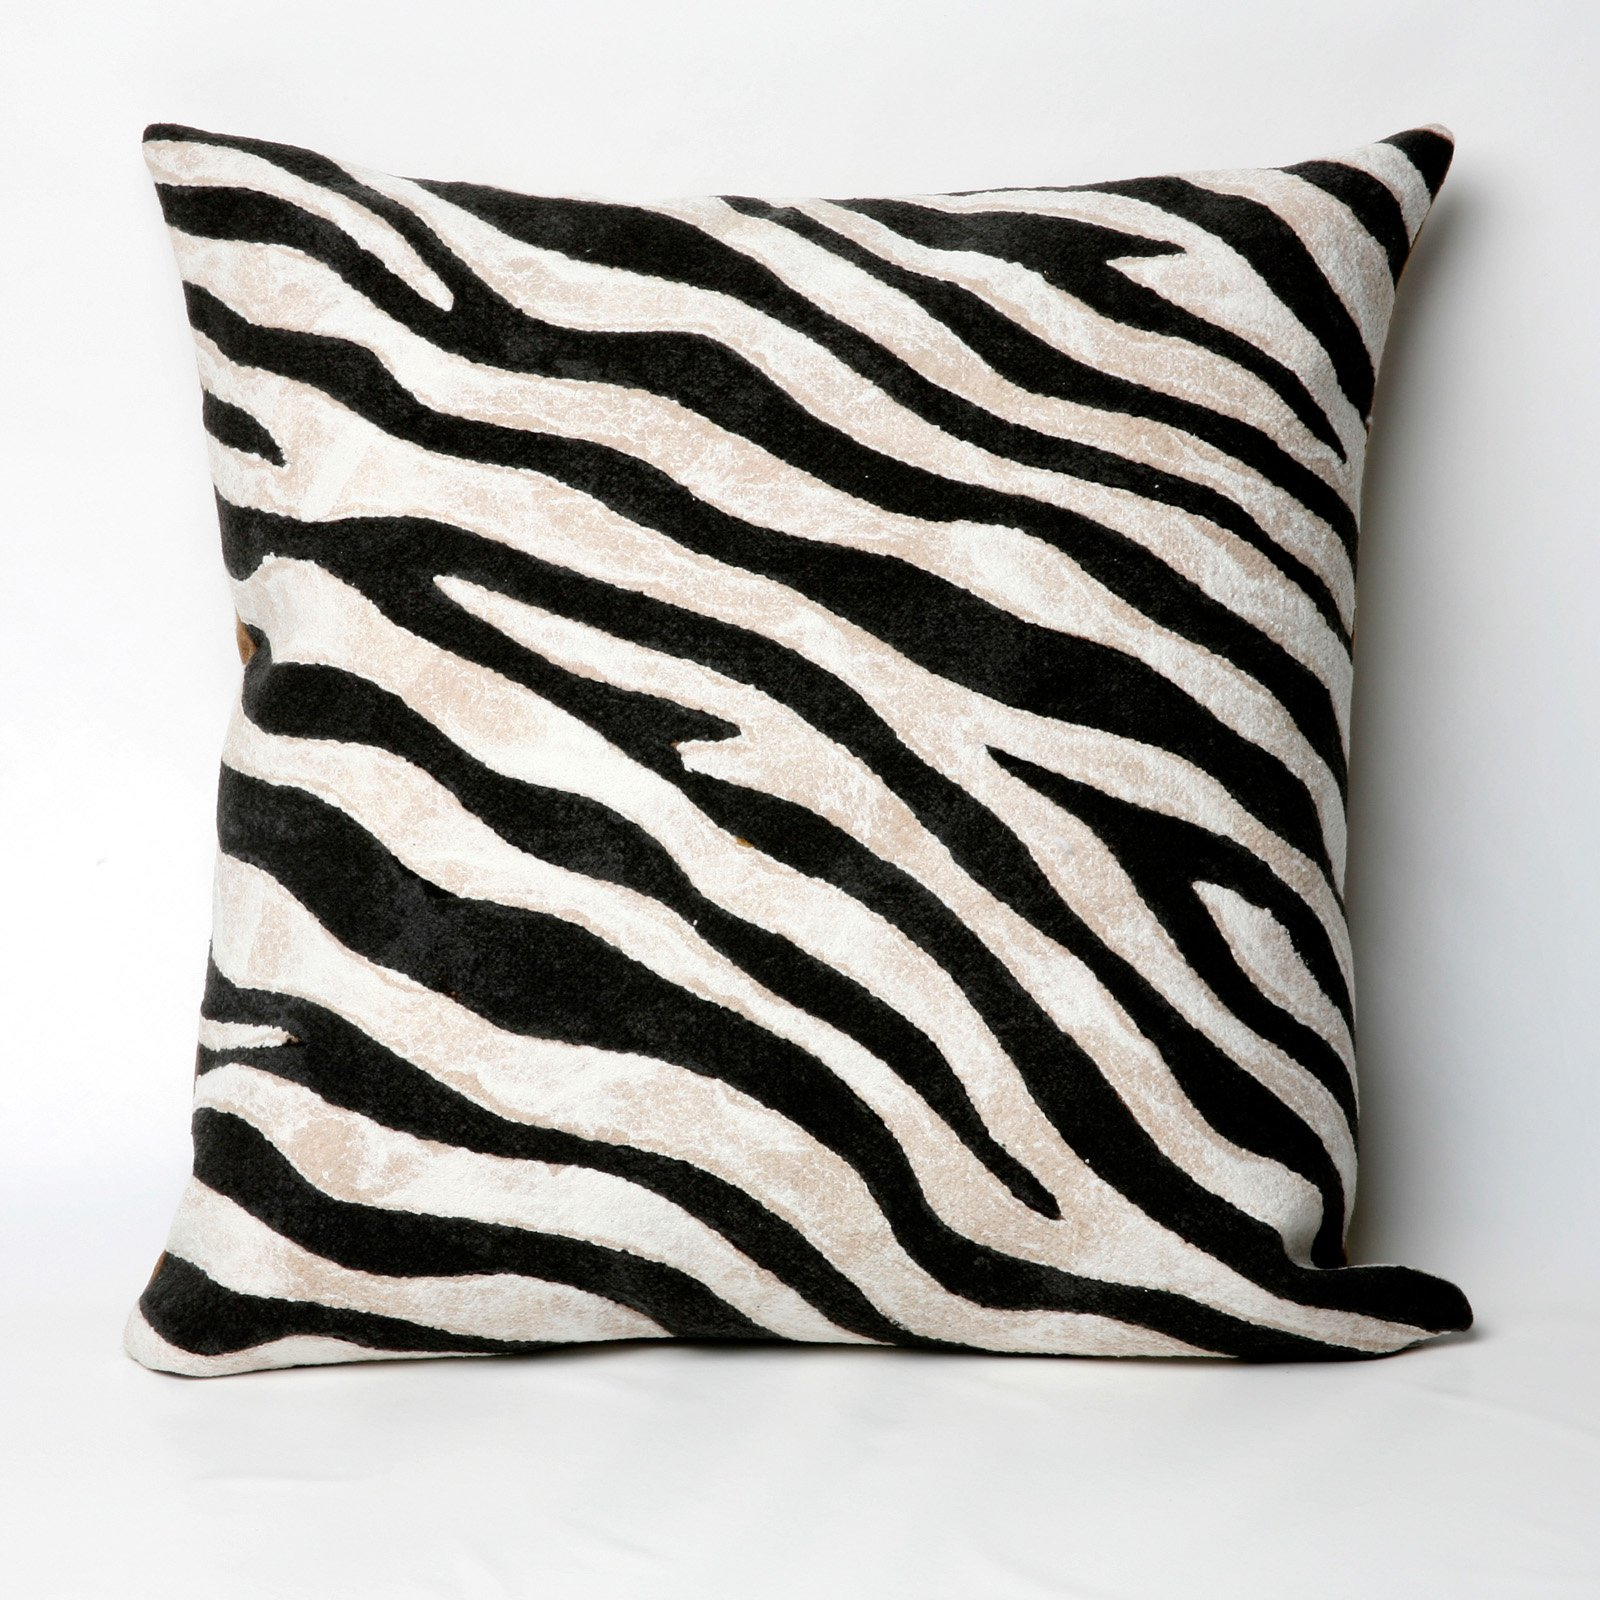 Liora Manne Zebra Indoor / Outdoor Throw Pillow